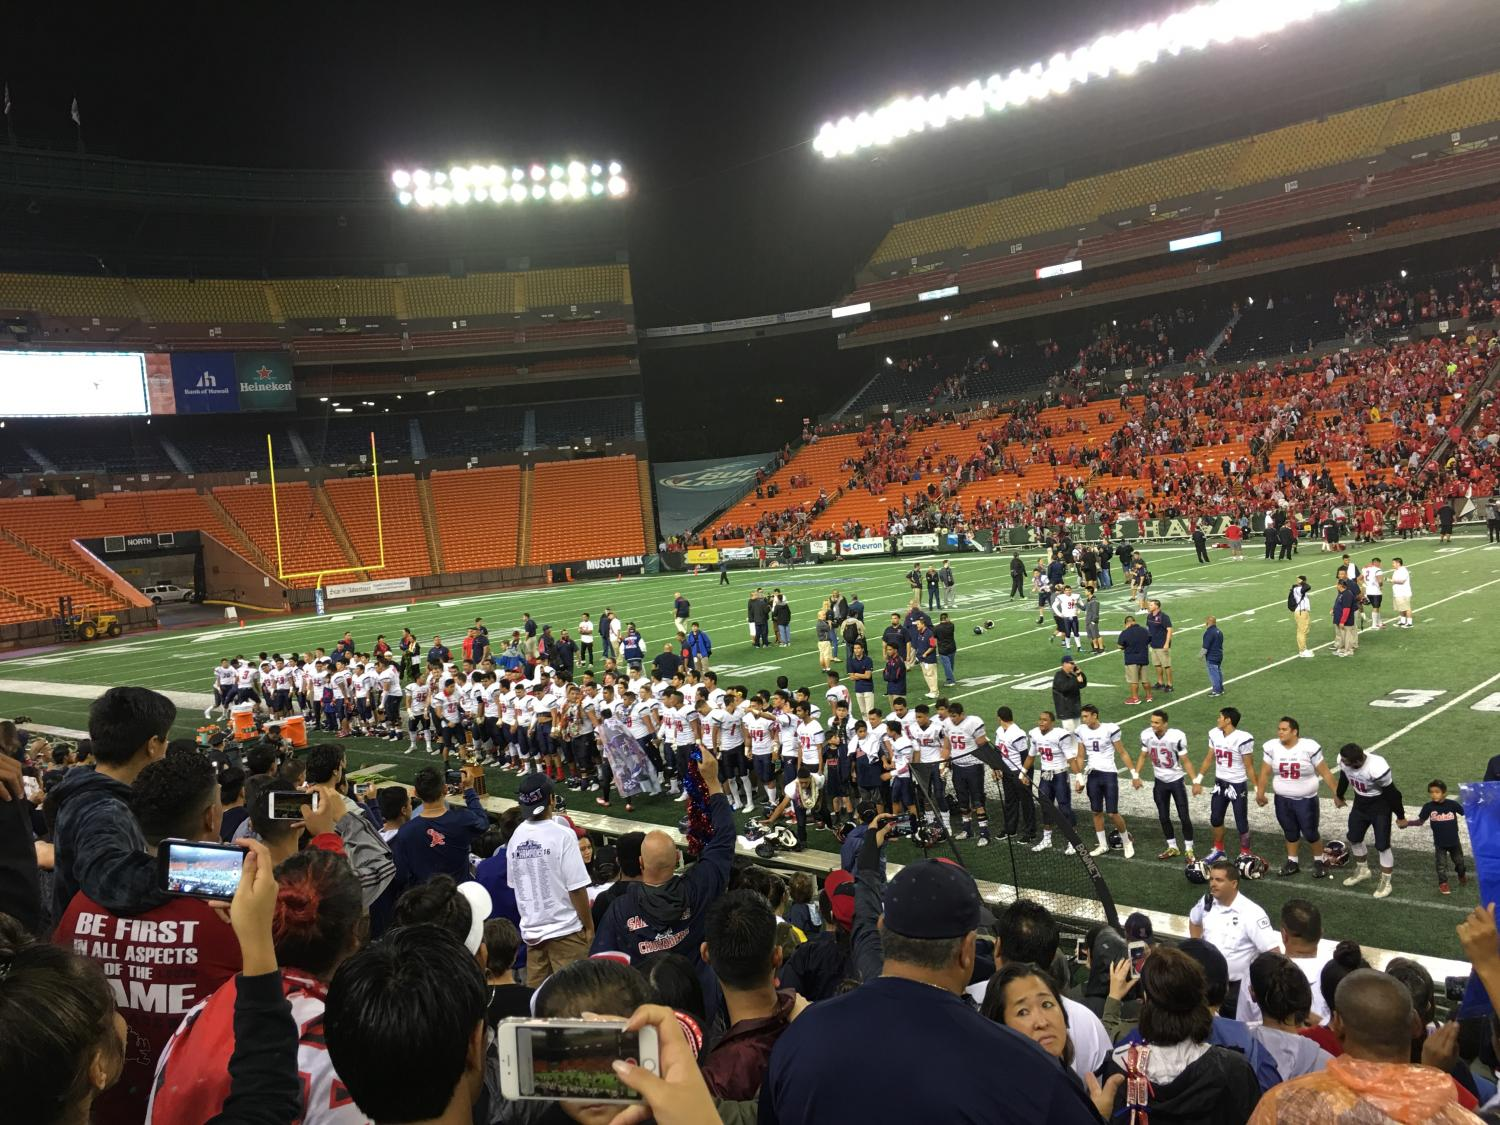 Excited Crusader fans watch as their team sings the alma mater, after defeating Kahuku for the first ever Open Division Championship. Photo by Chord Medeiros